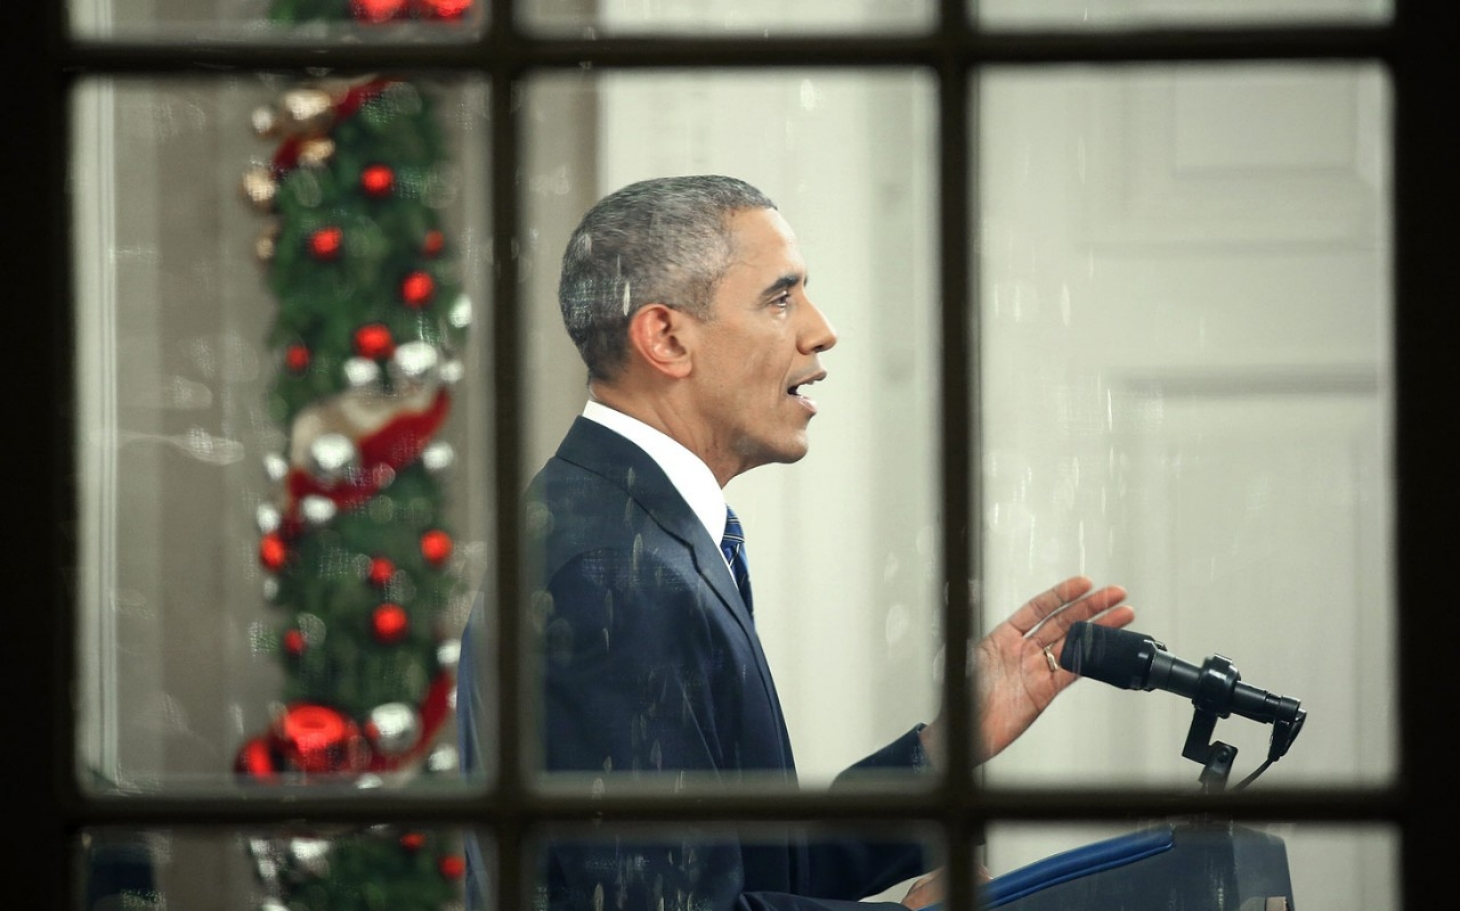 obama speech critique Essays - largest database of quality sample essays and research papers on speech critique  obama's speech everybody knows how good of a speaker obama is.